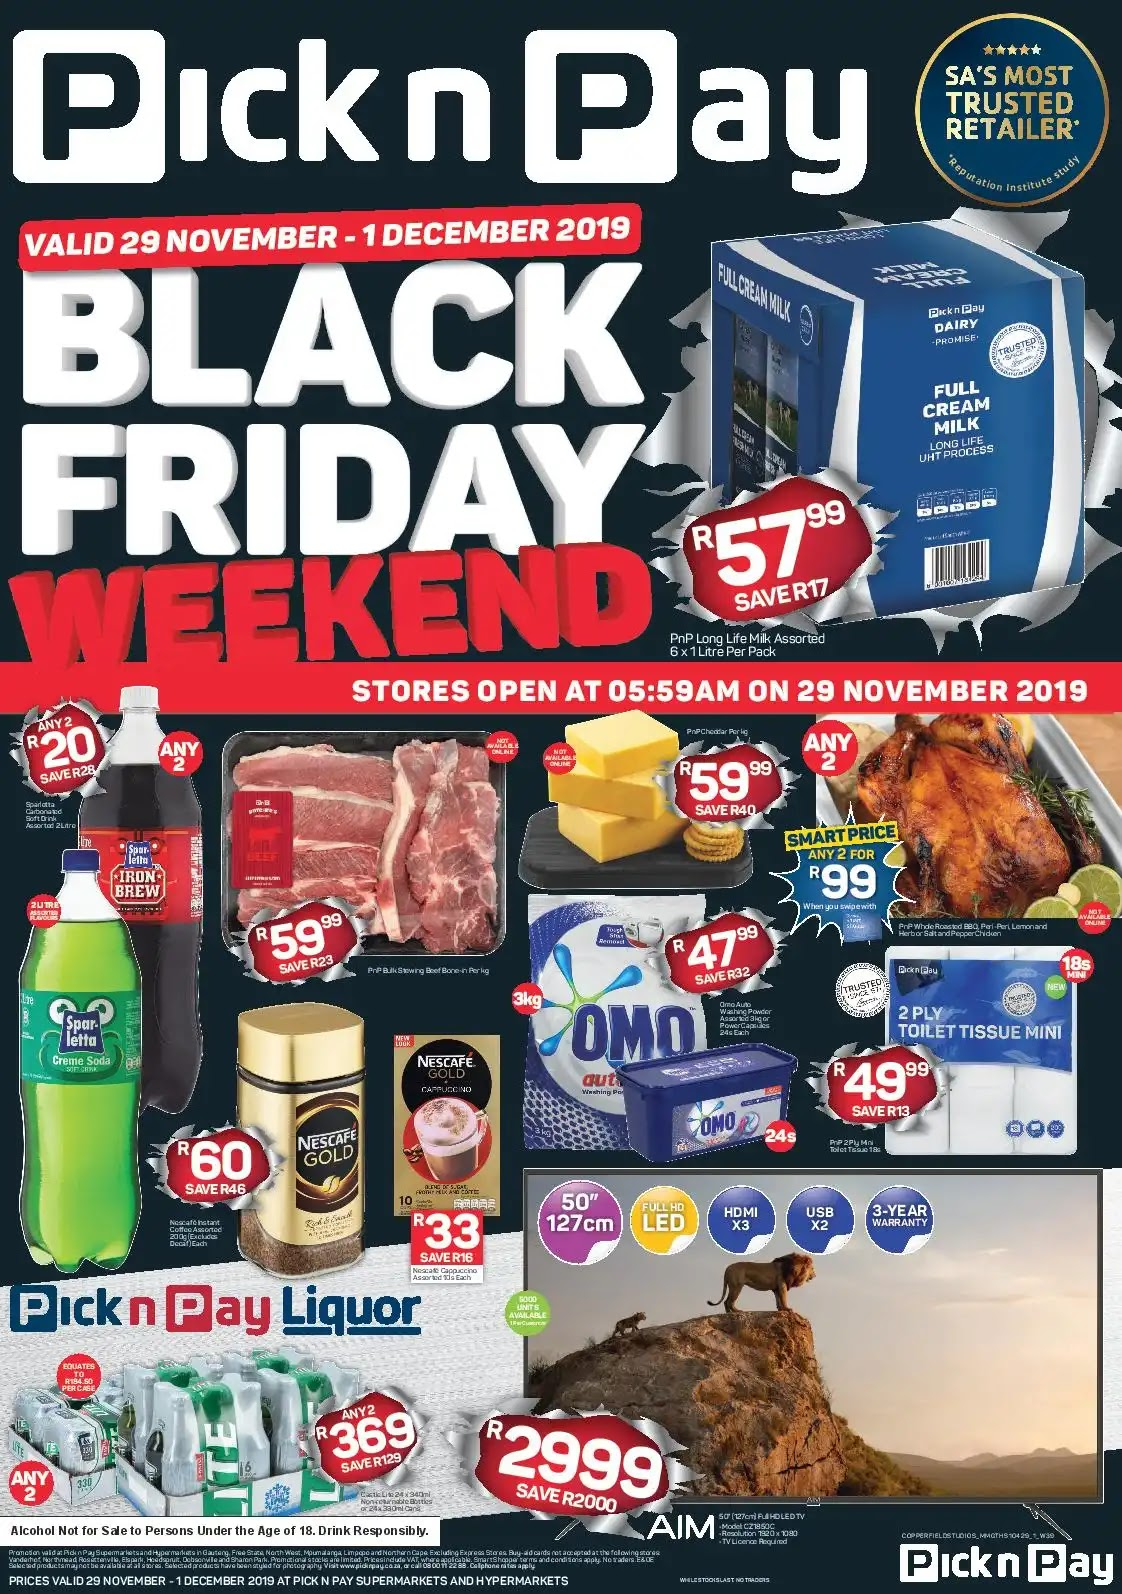 Pick n Pay Black Friday Deals- INLAND